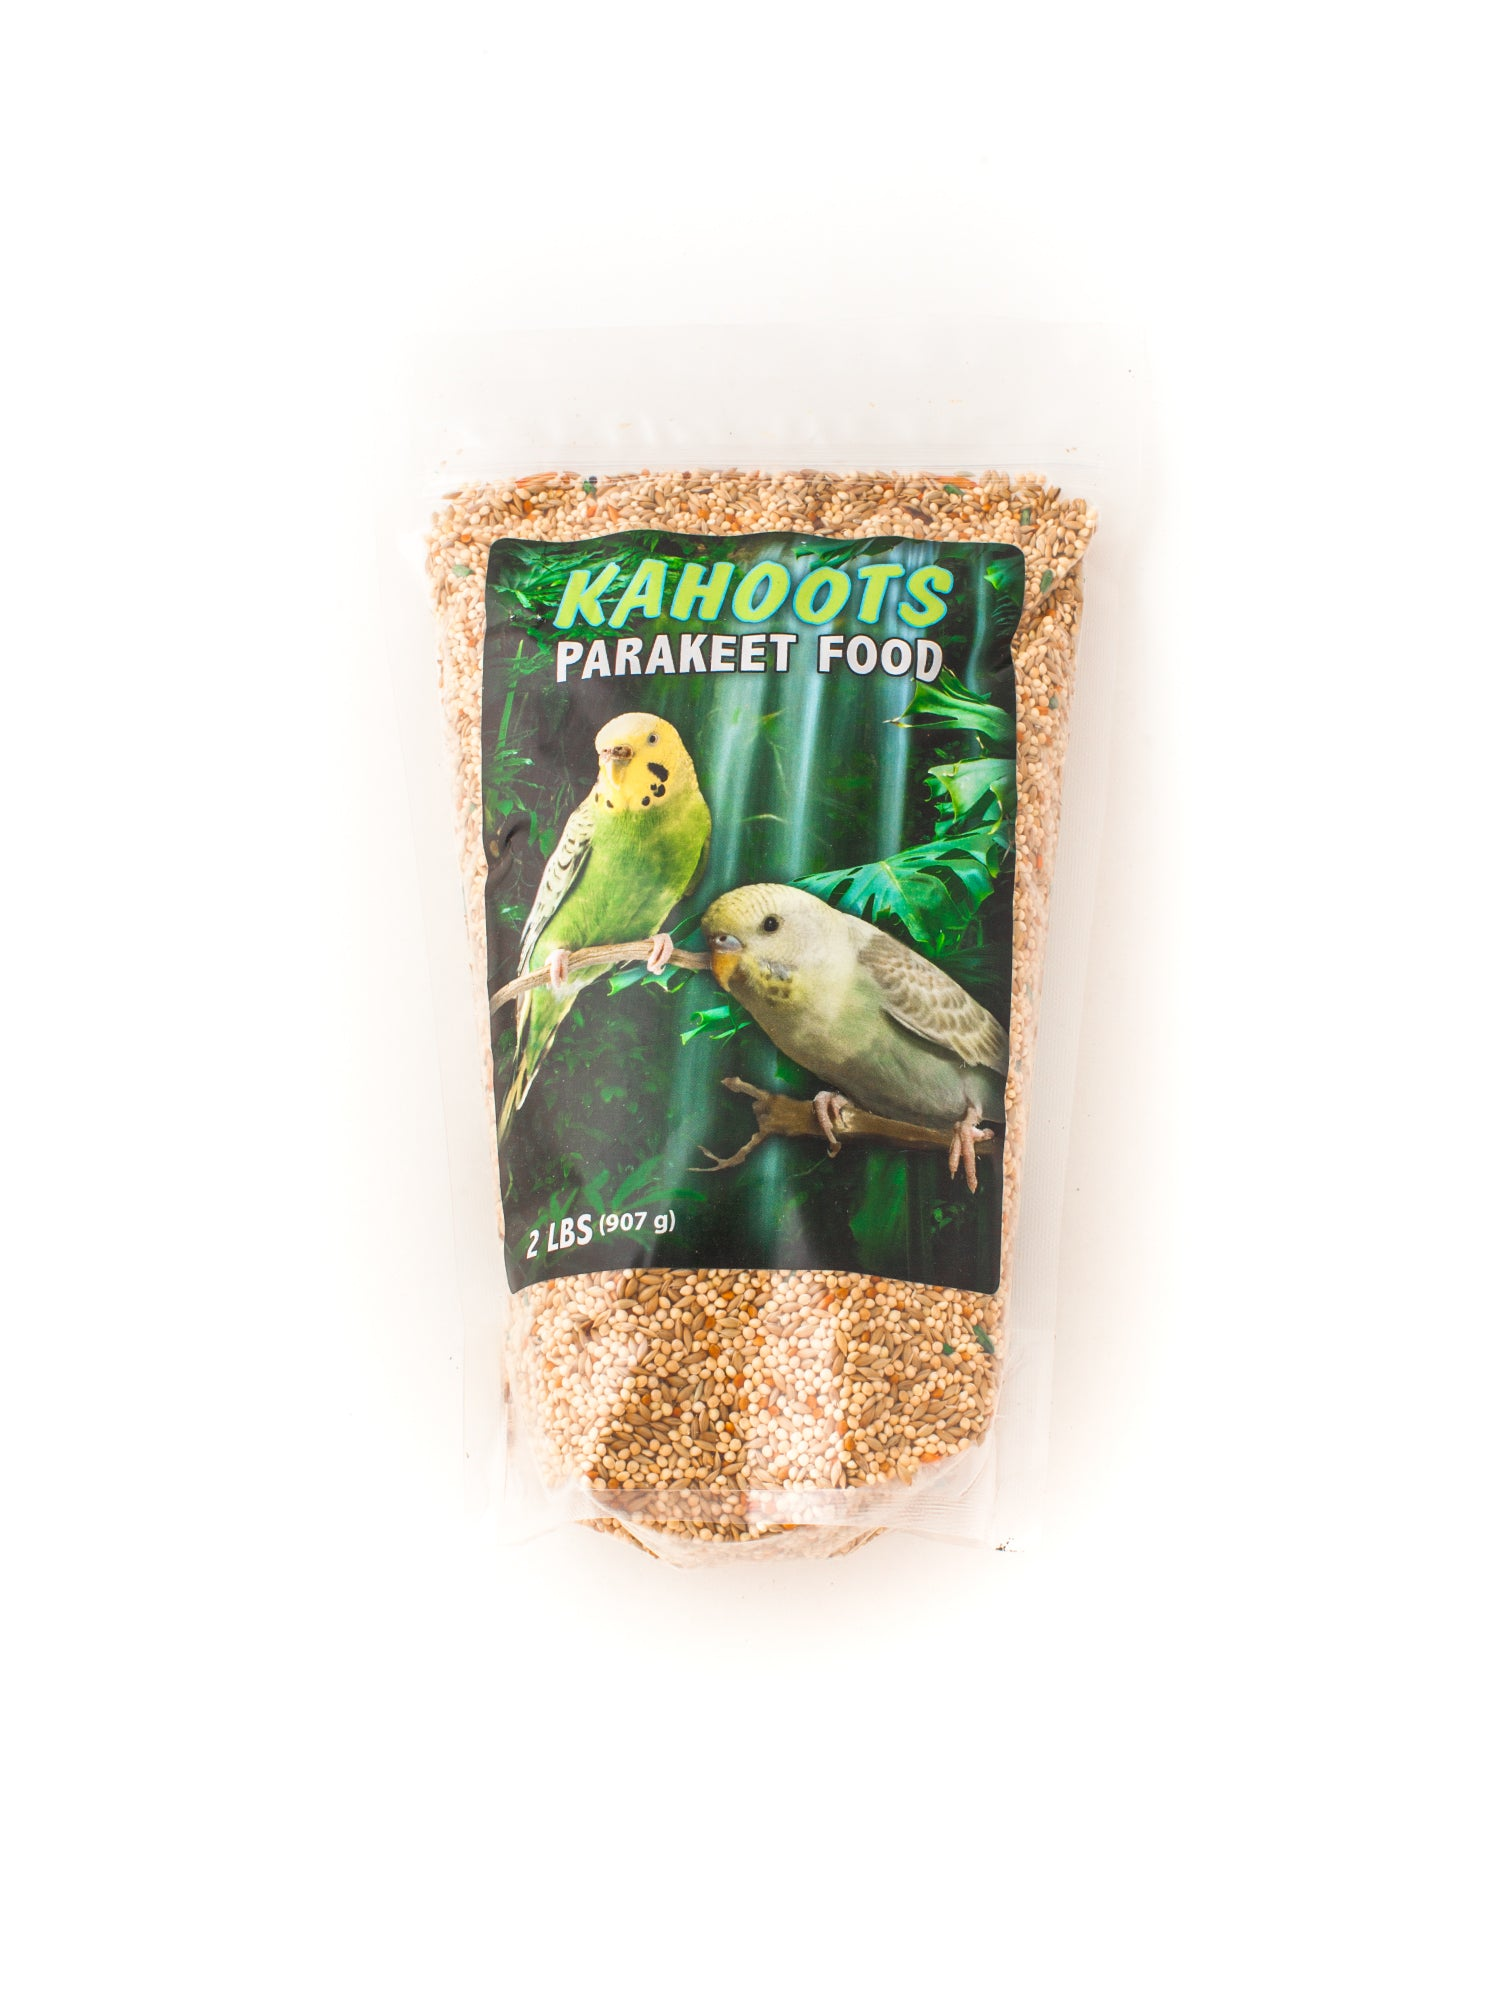 Parakeet bird seed mix. Picture of two multi-colored parakeets on front label